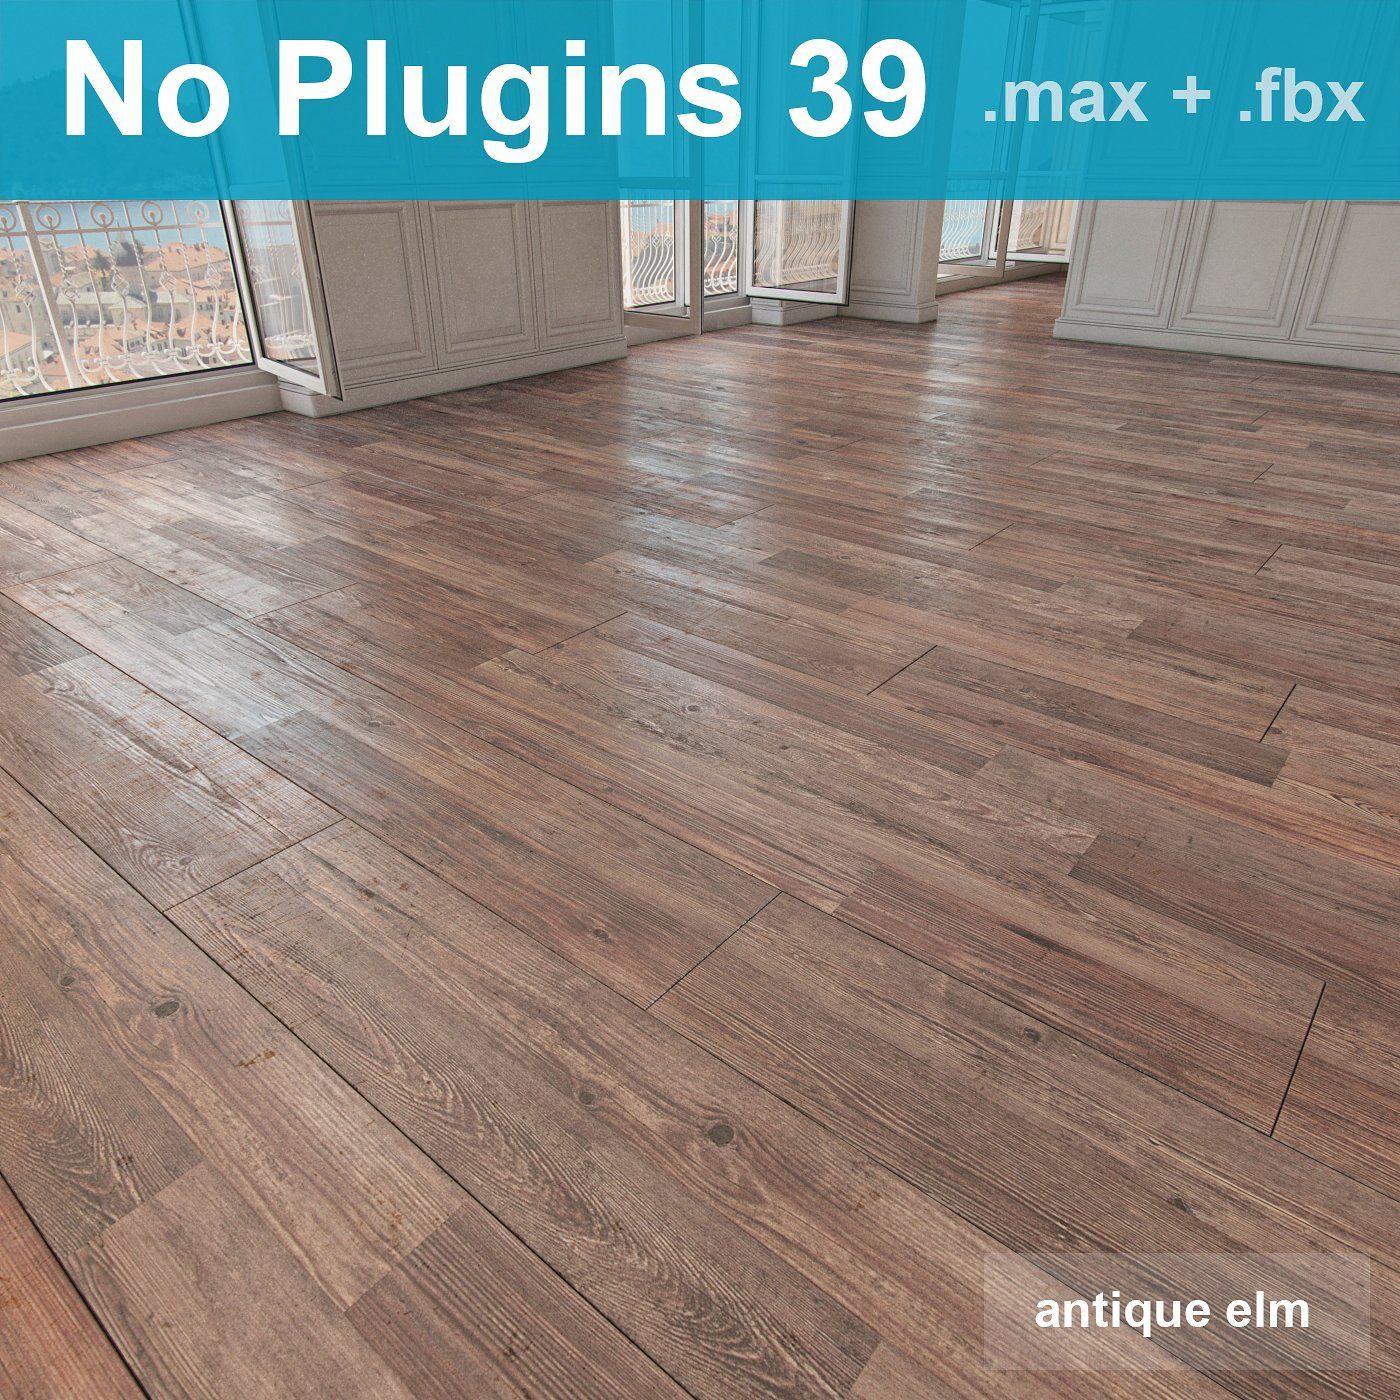 Parquet Floor 39 WITHOUT PLUGINS Parquet flooring